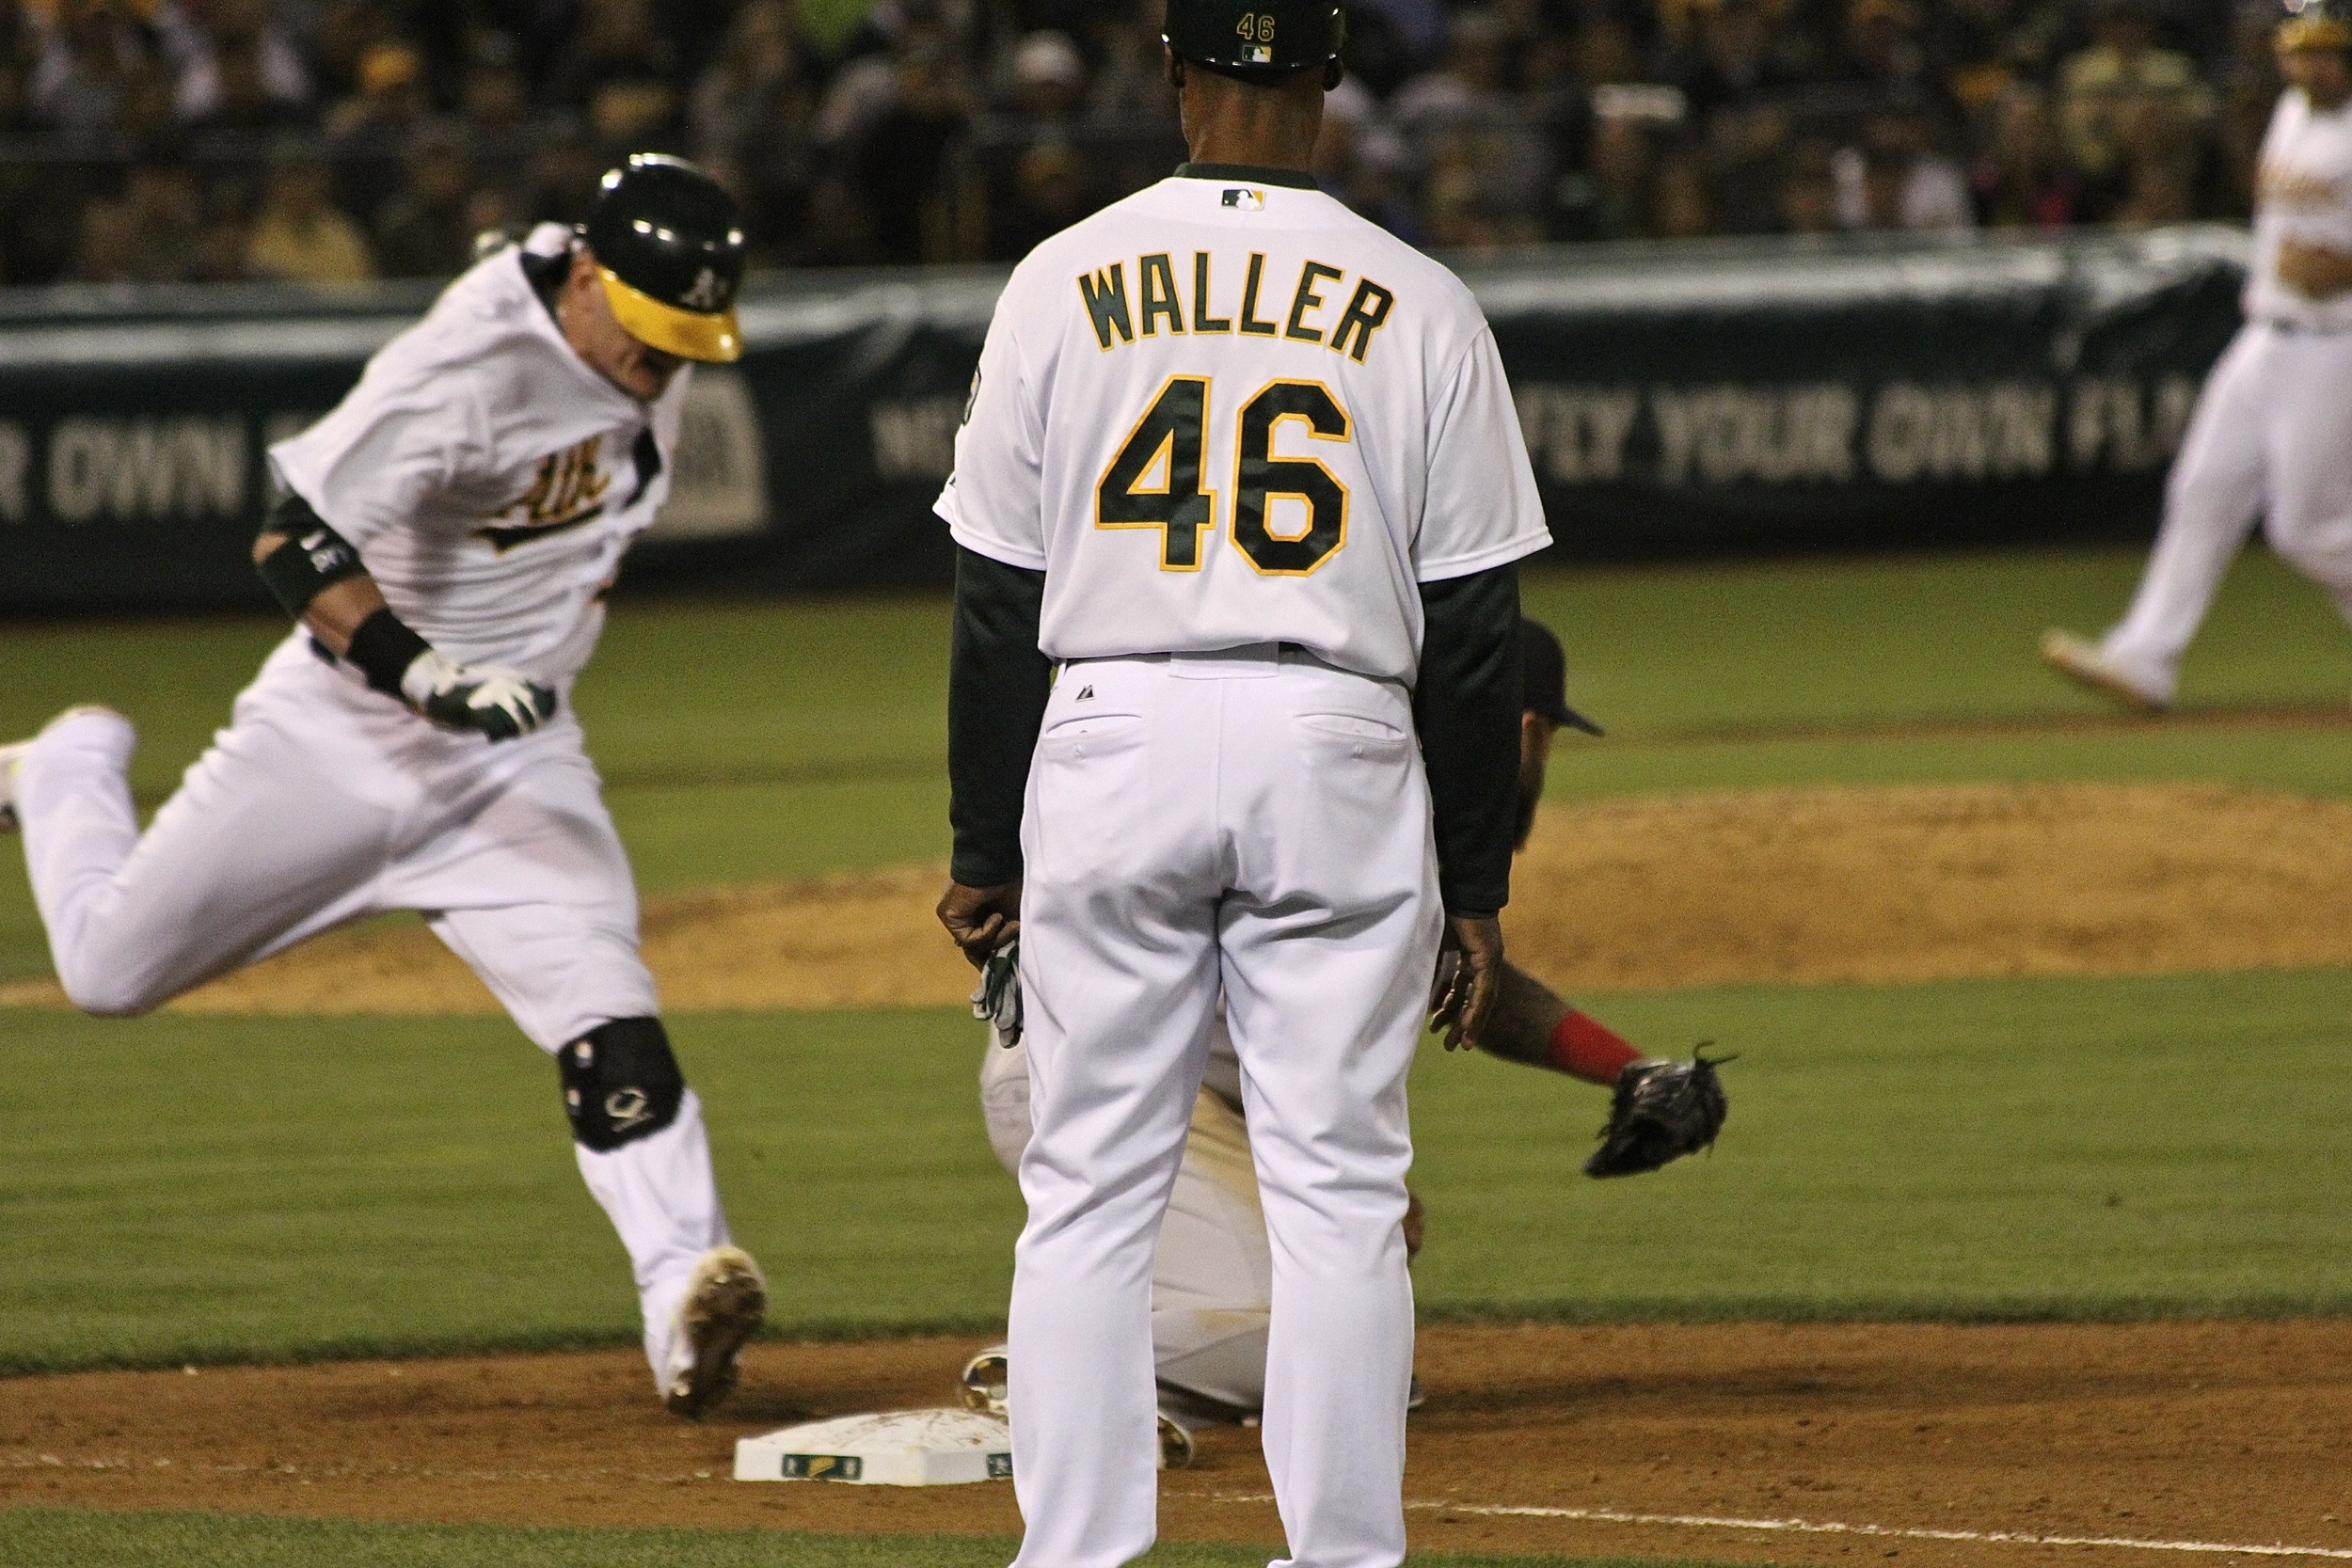 Out of the way Waller!